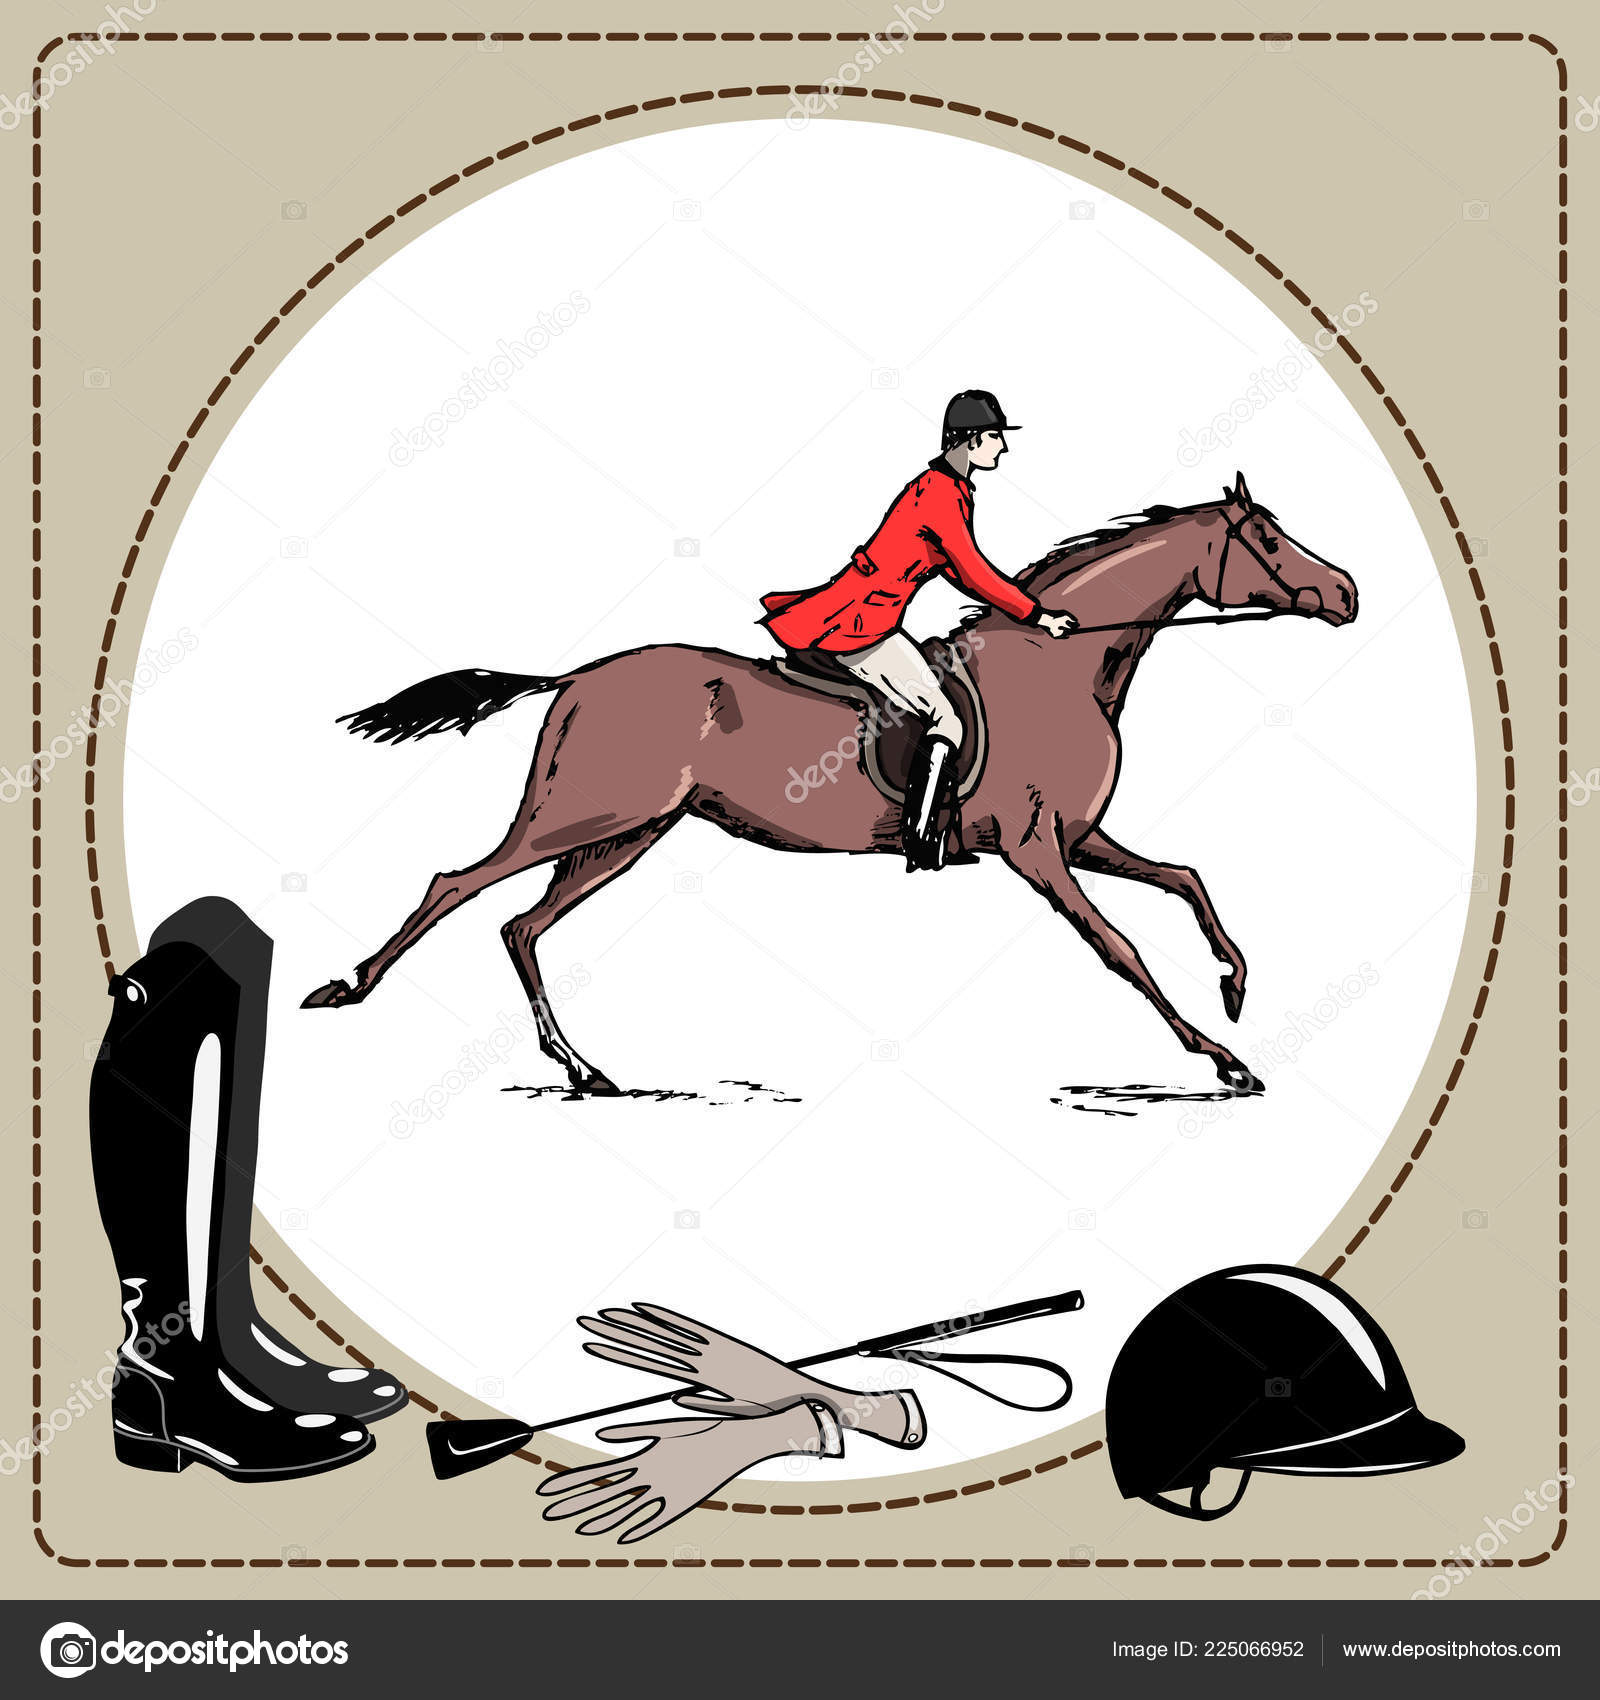 Equestrian Sport Horse Rider Red Jacket England Steeplechase Style Derby Stock Vector C Larisa Zorina 225066952